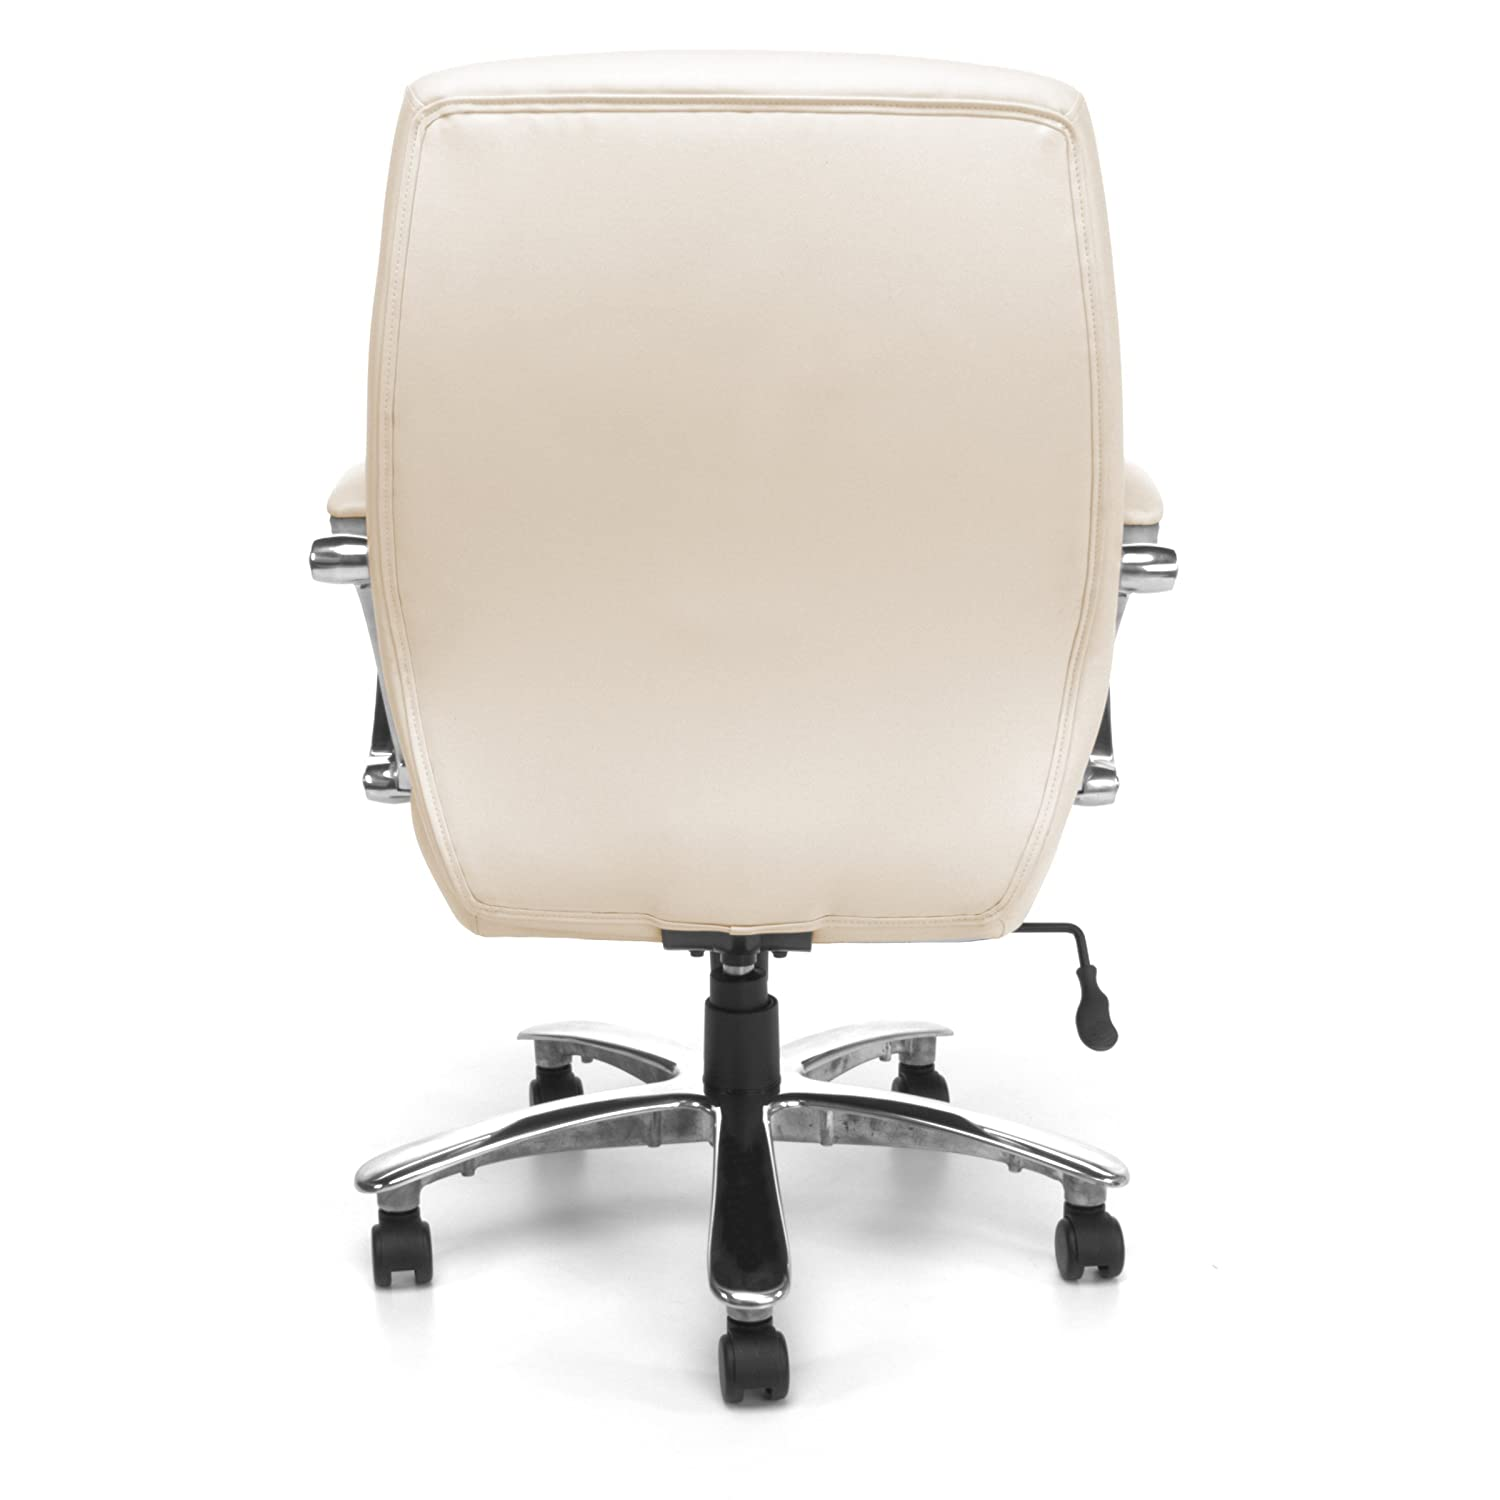 "Amazon Big and Tall fice Chairs ""Zeus"" 500 lb Capacity"